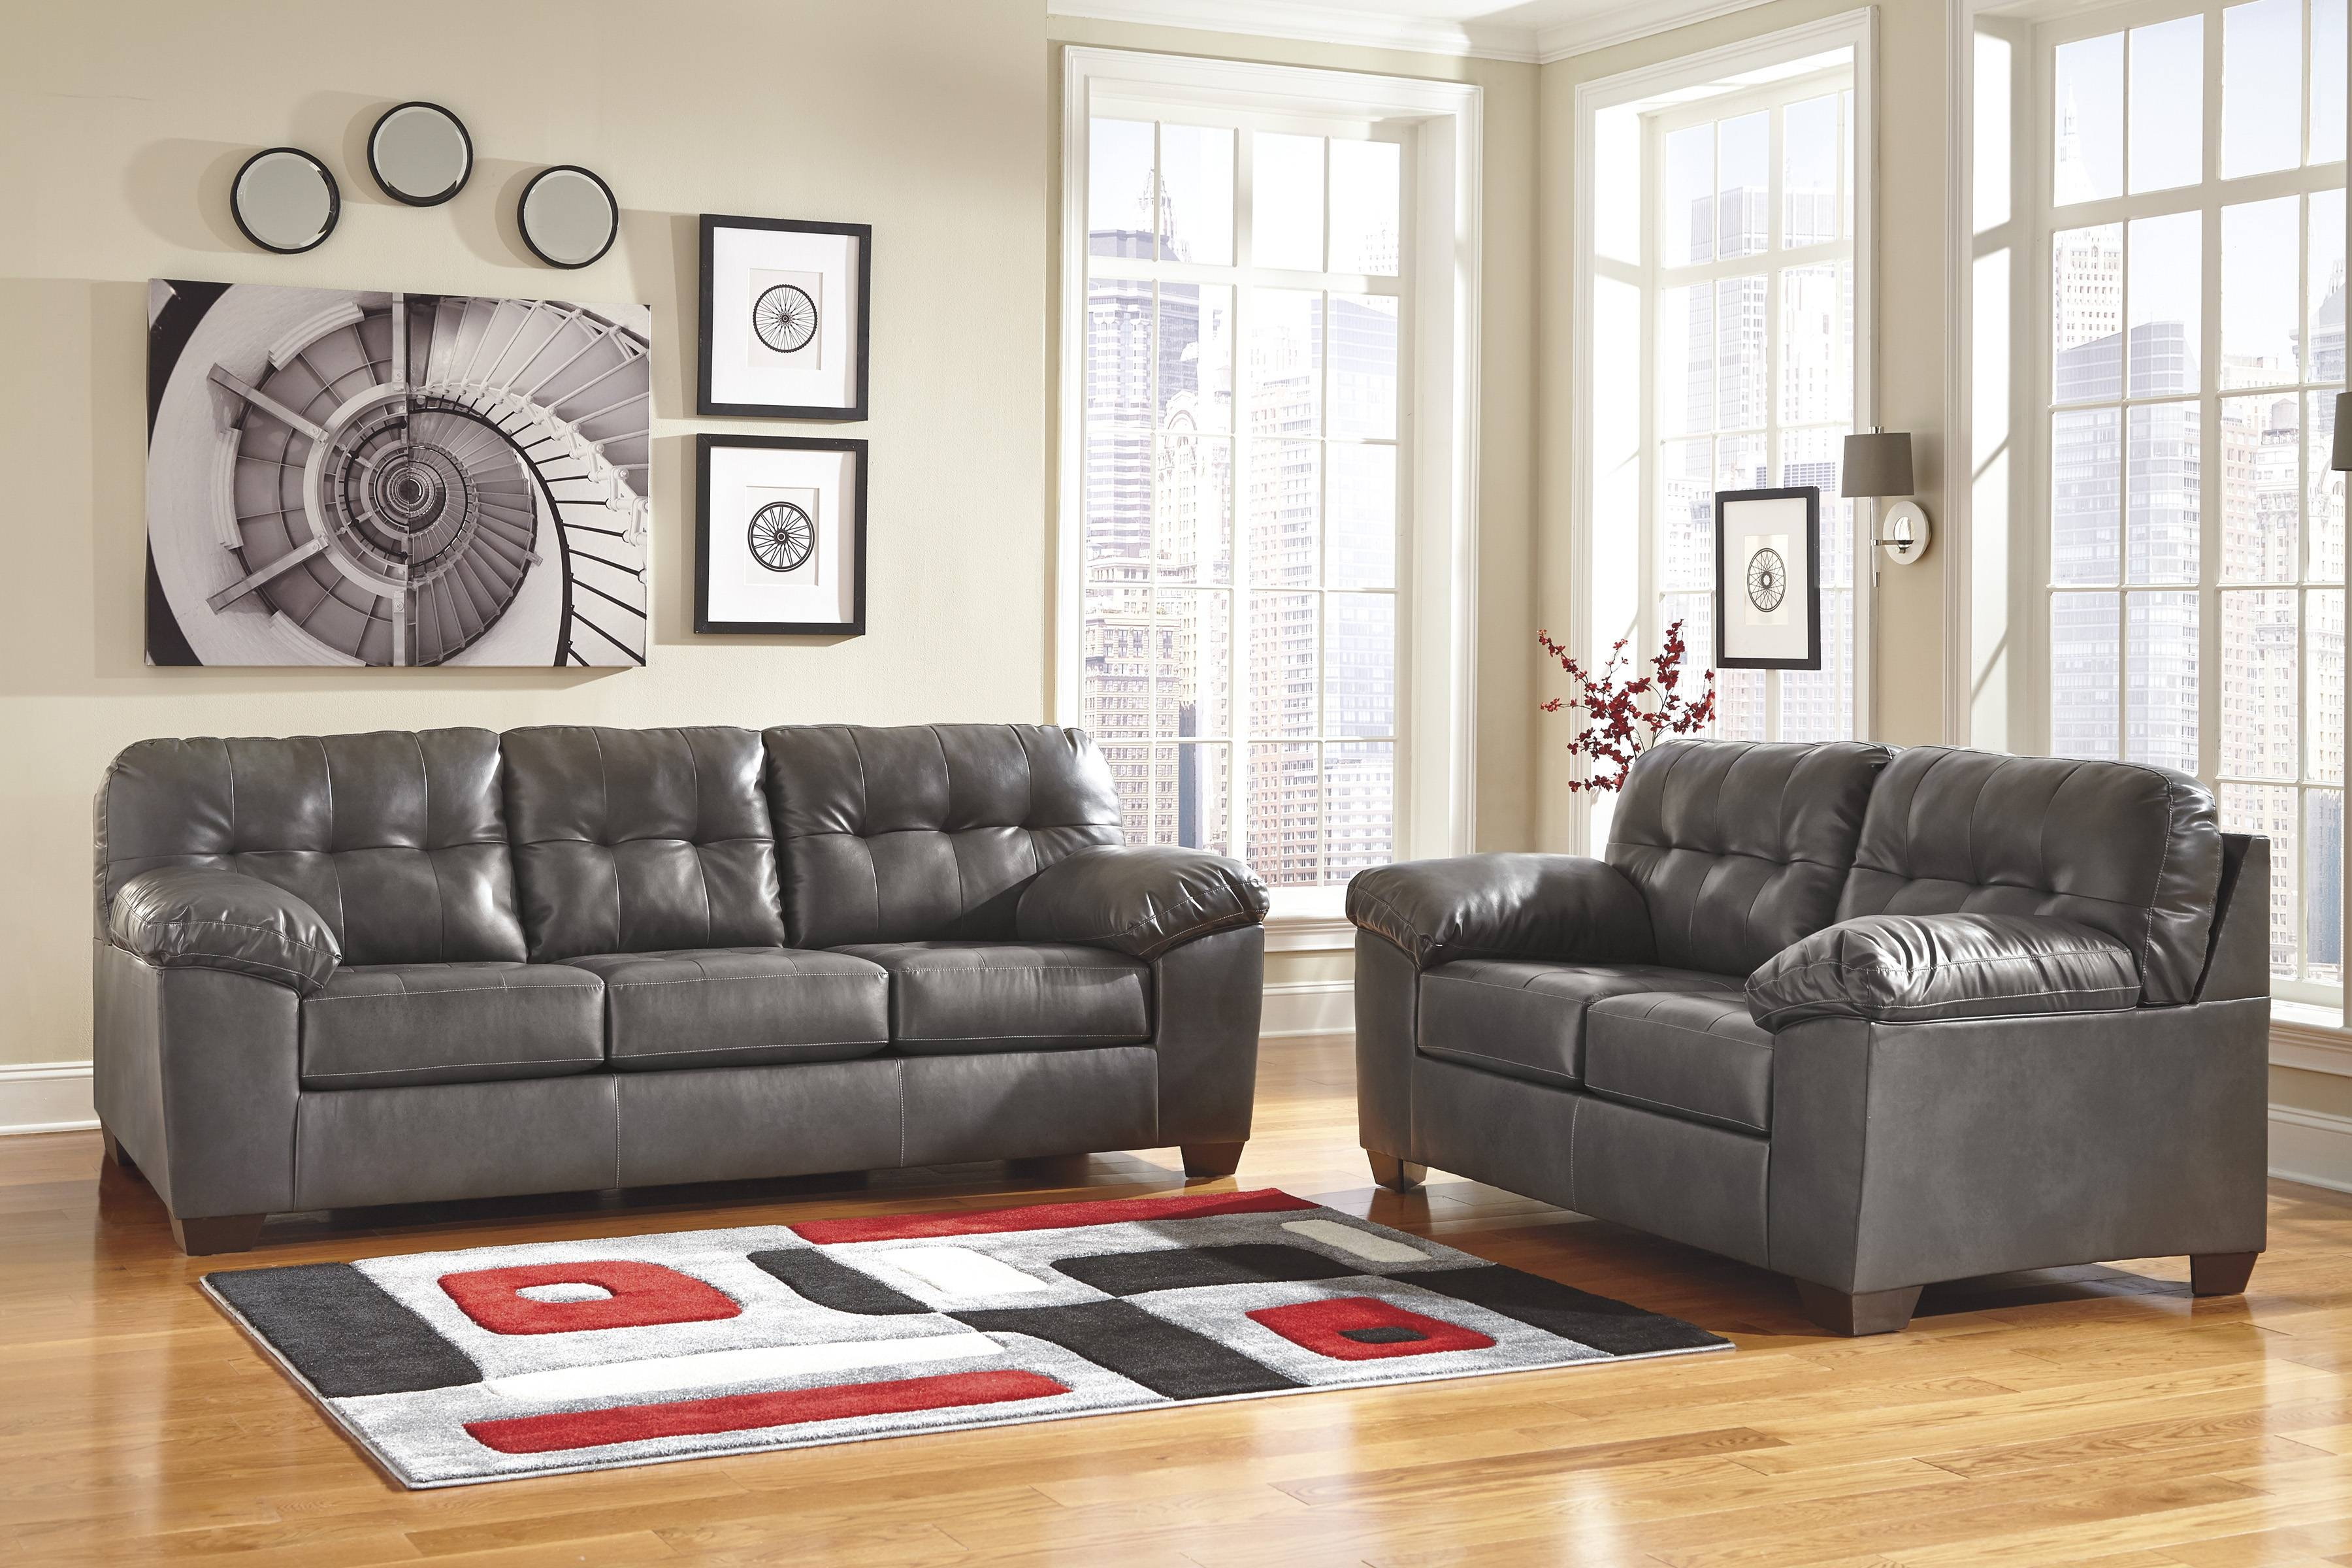 Gray Sectional Sofa Ashley Furniture | Centerfieldbar intended for Gray Sofas (Image 12 of 15)